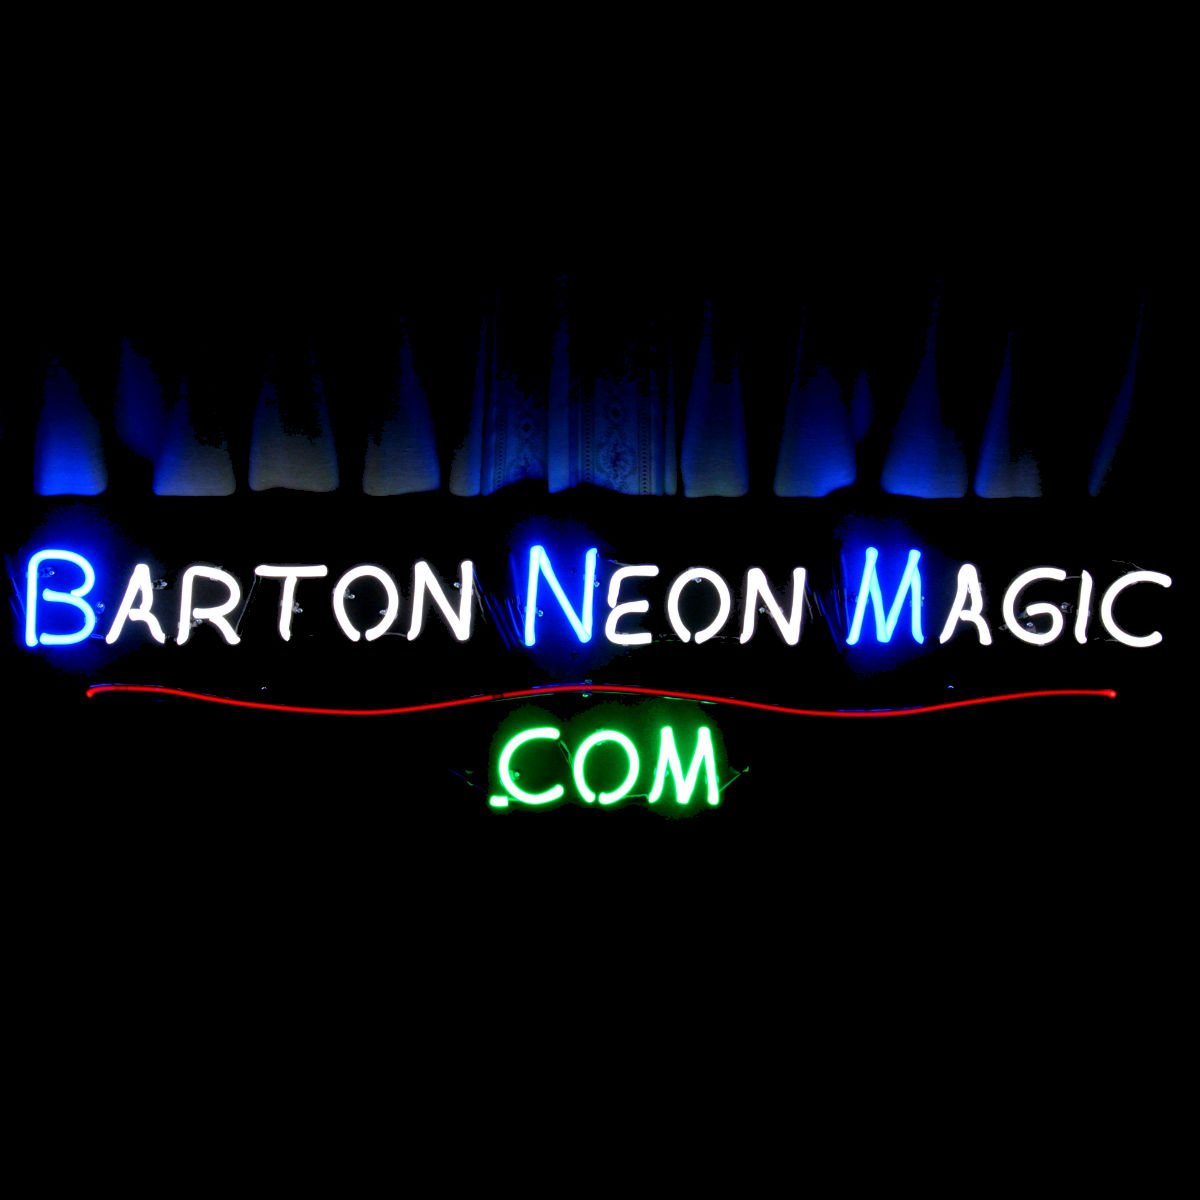 CUSTOM AUTOMOTIVE NEON SIGNS - HAND BLOWN TO ORDER - by John Barton - BartonNeonMagic.com